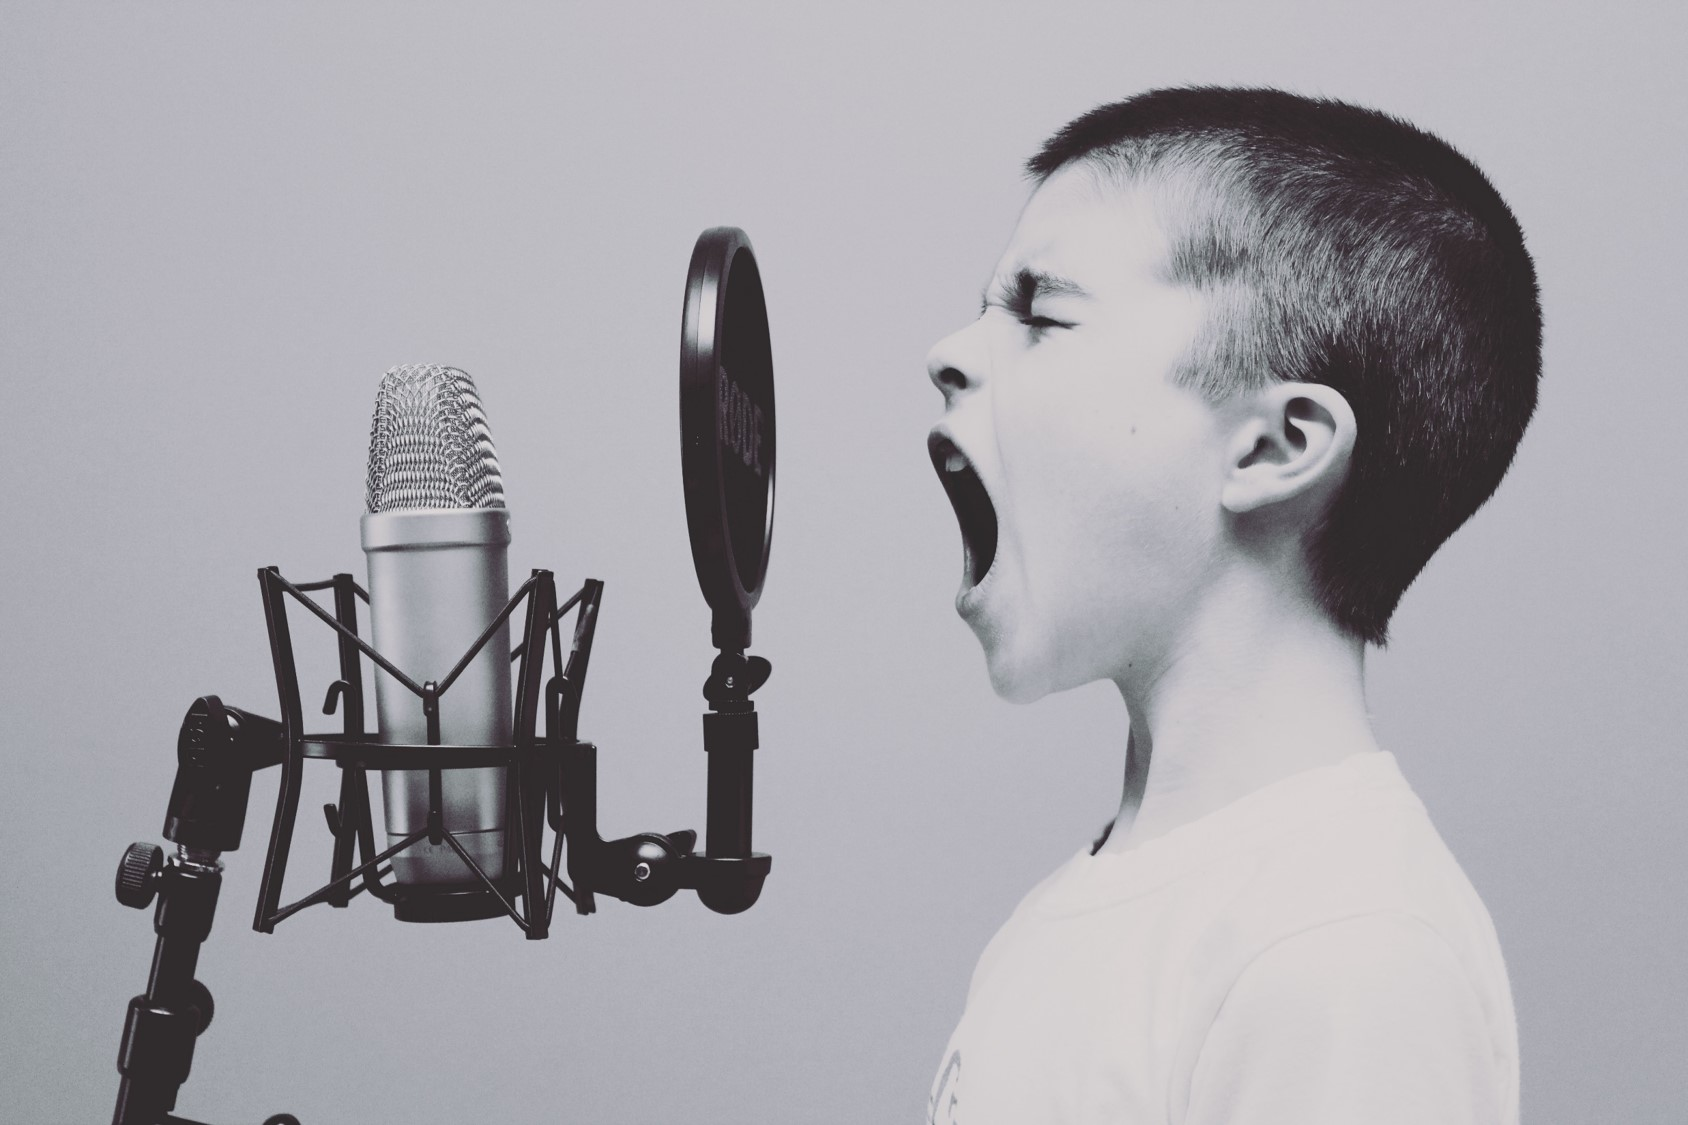 Boy shouting on mic Speak Out.jpg